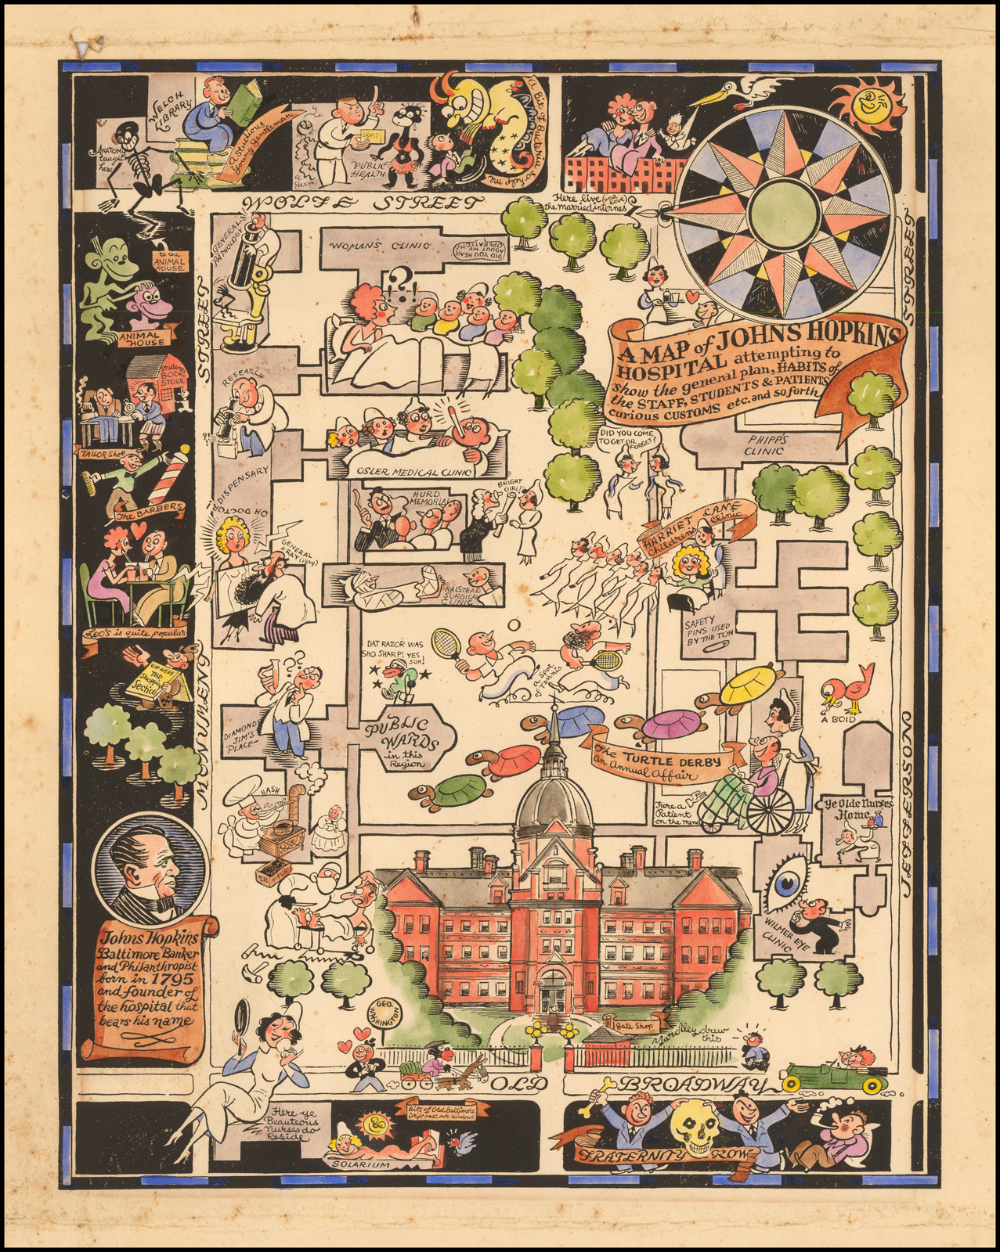 Johns Hopkins Hospital, Baltimore (1935) (With images